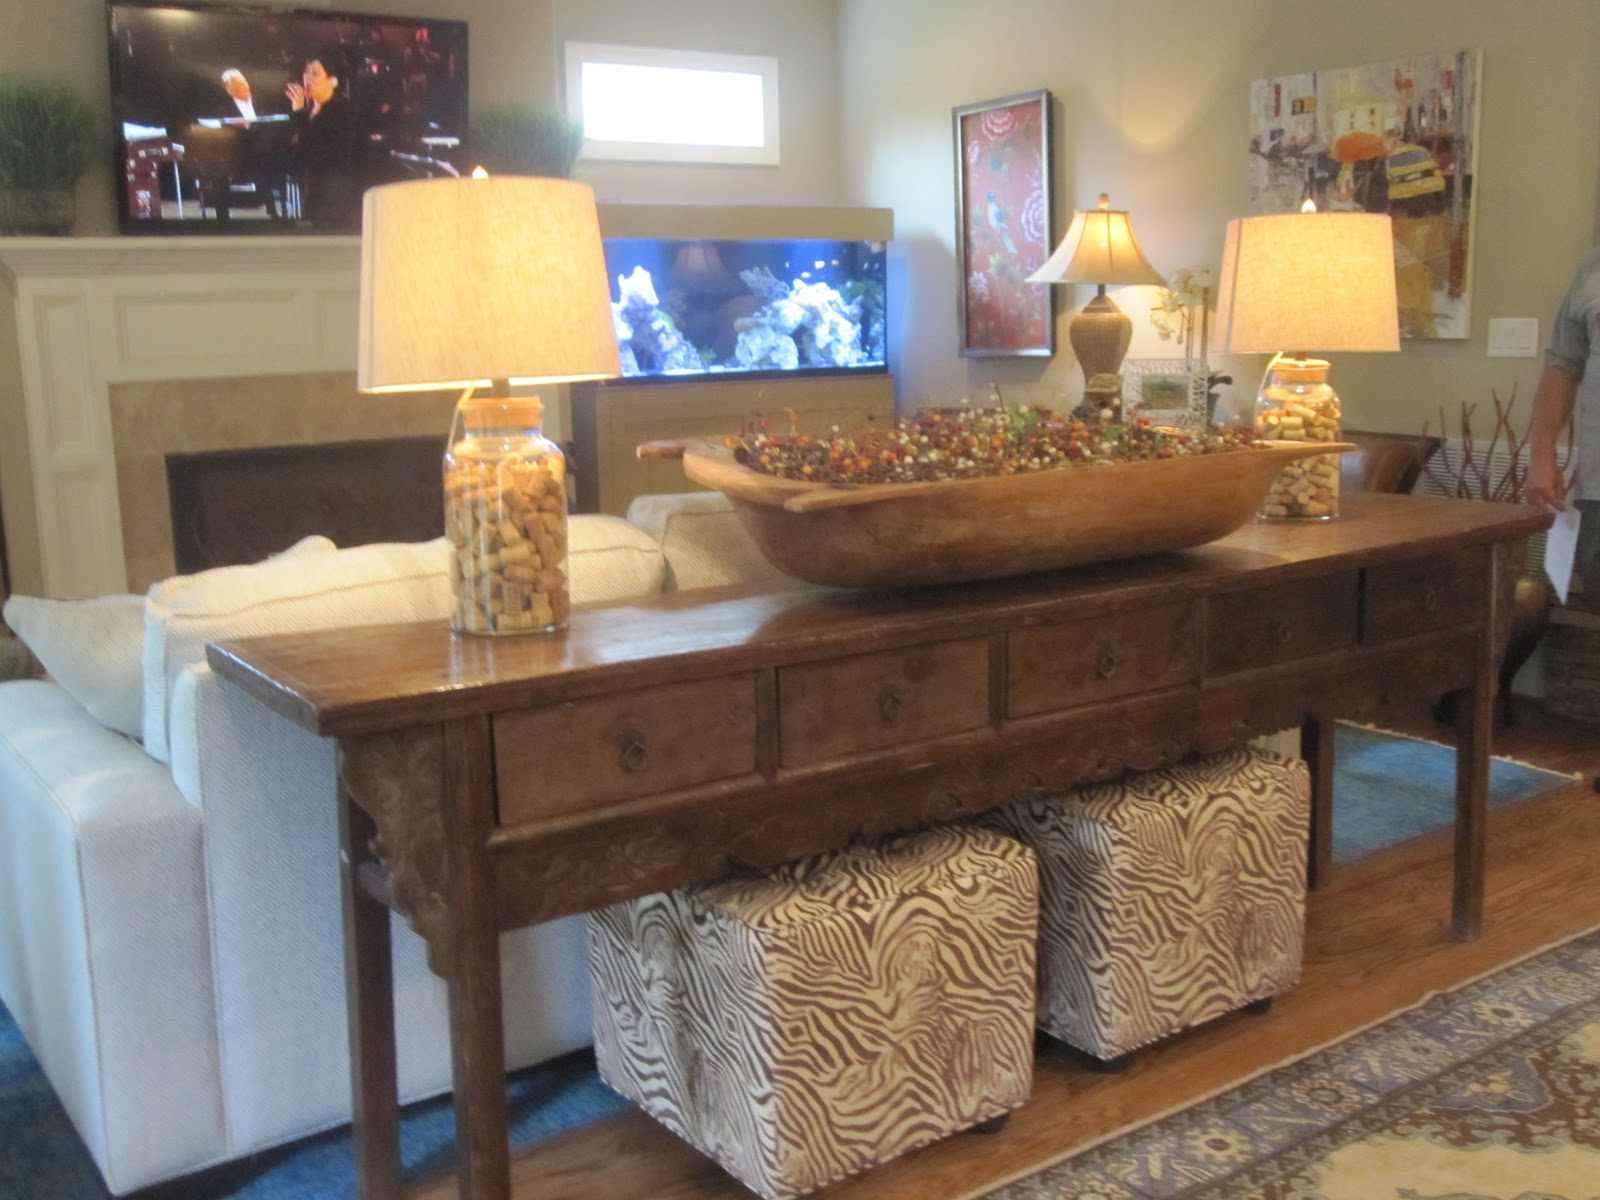 Awesome Console Table With Seating Underneath